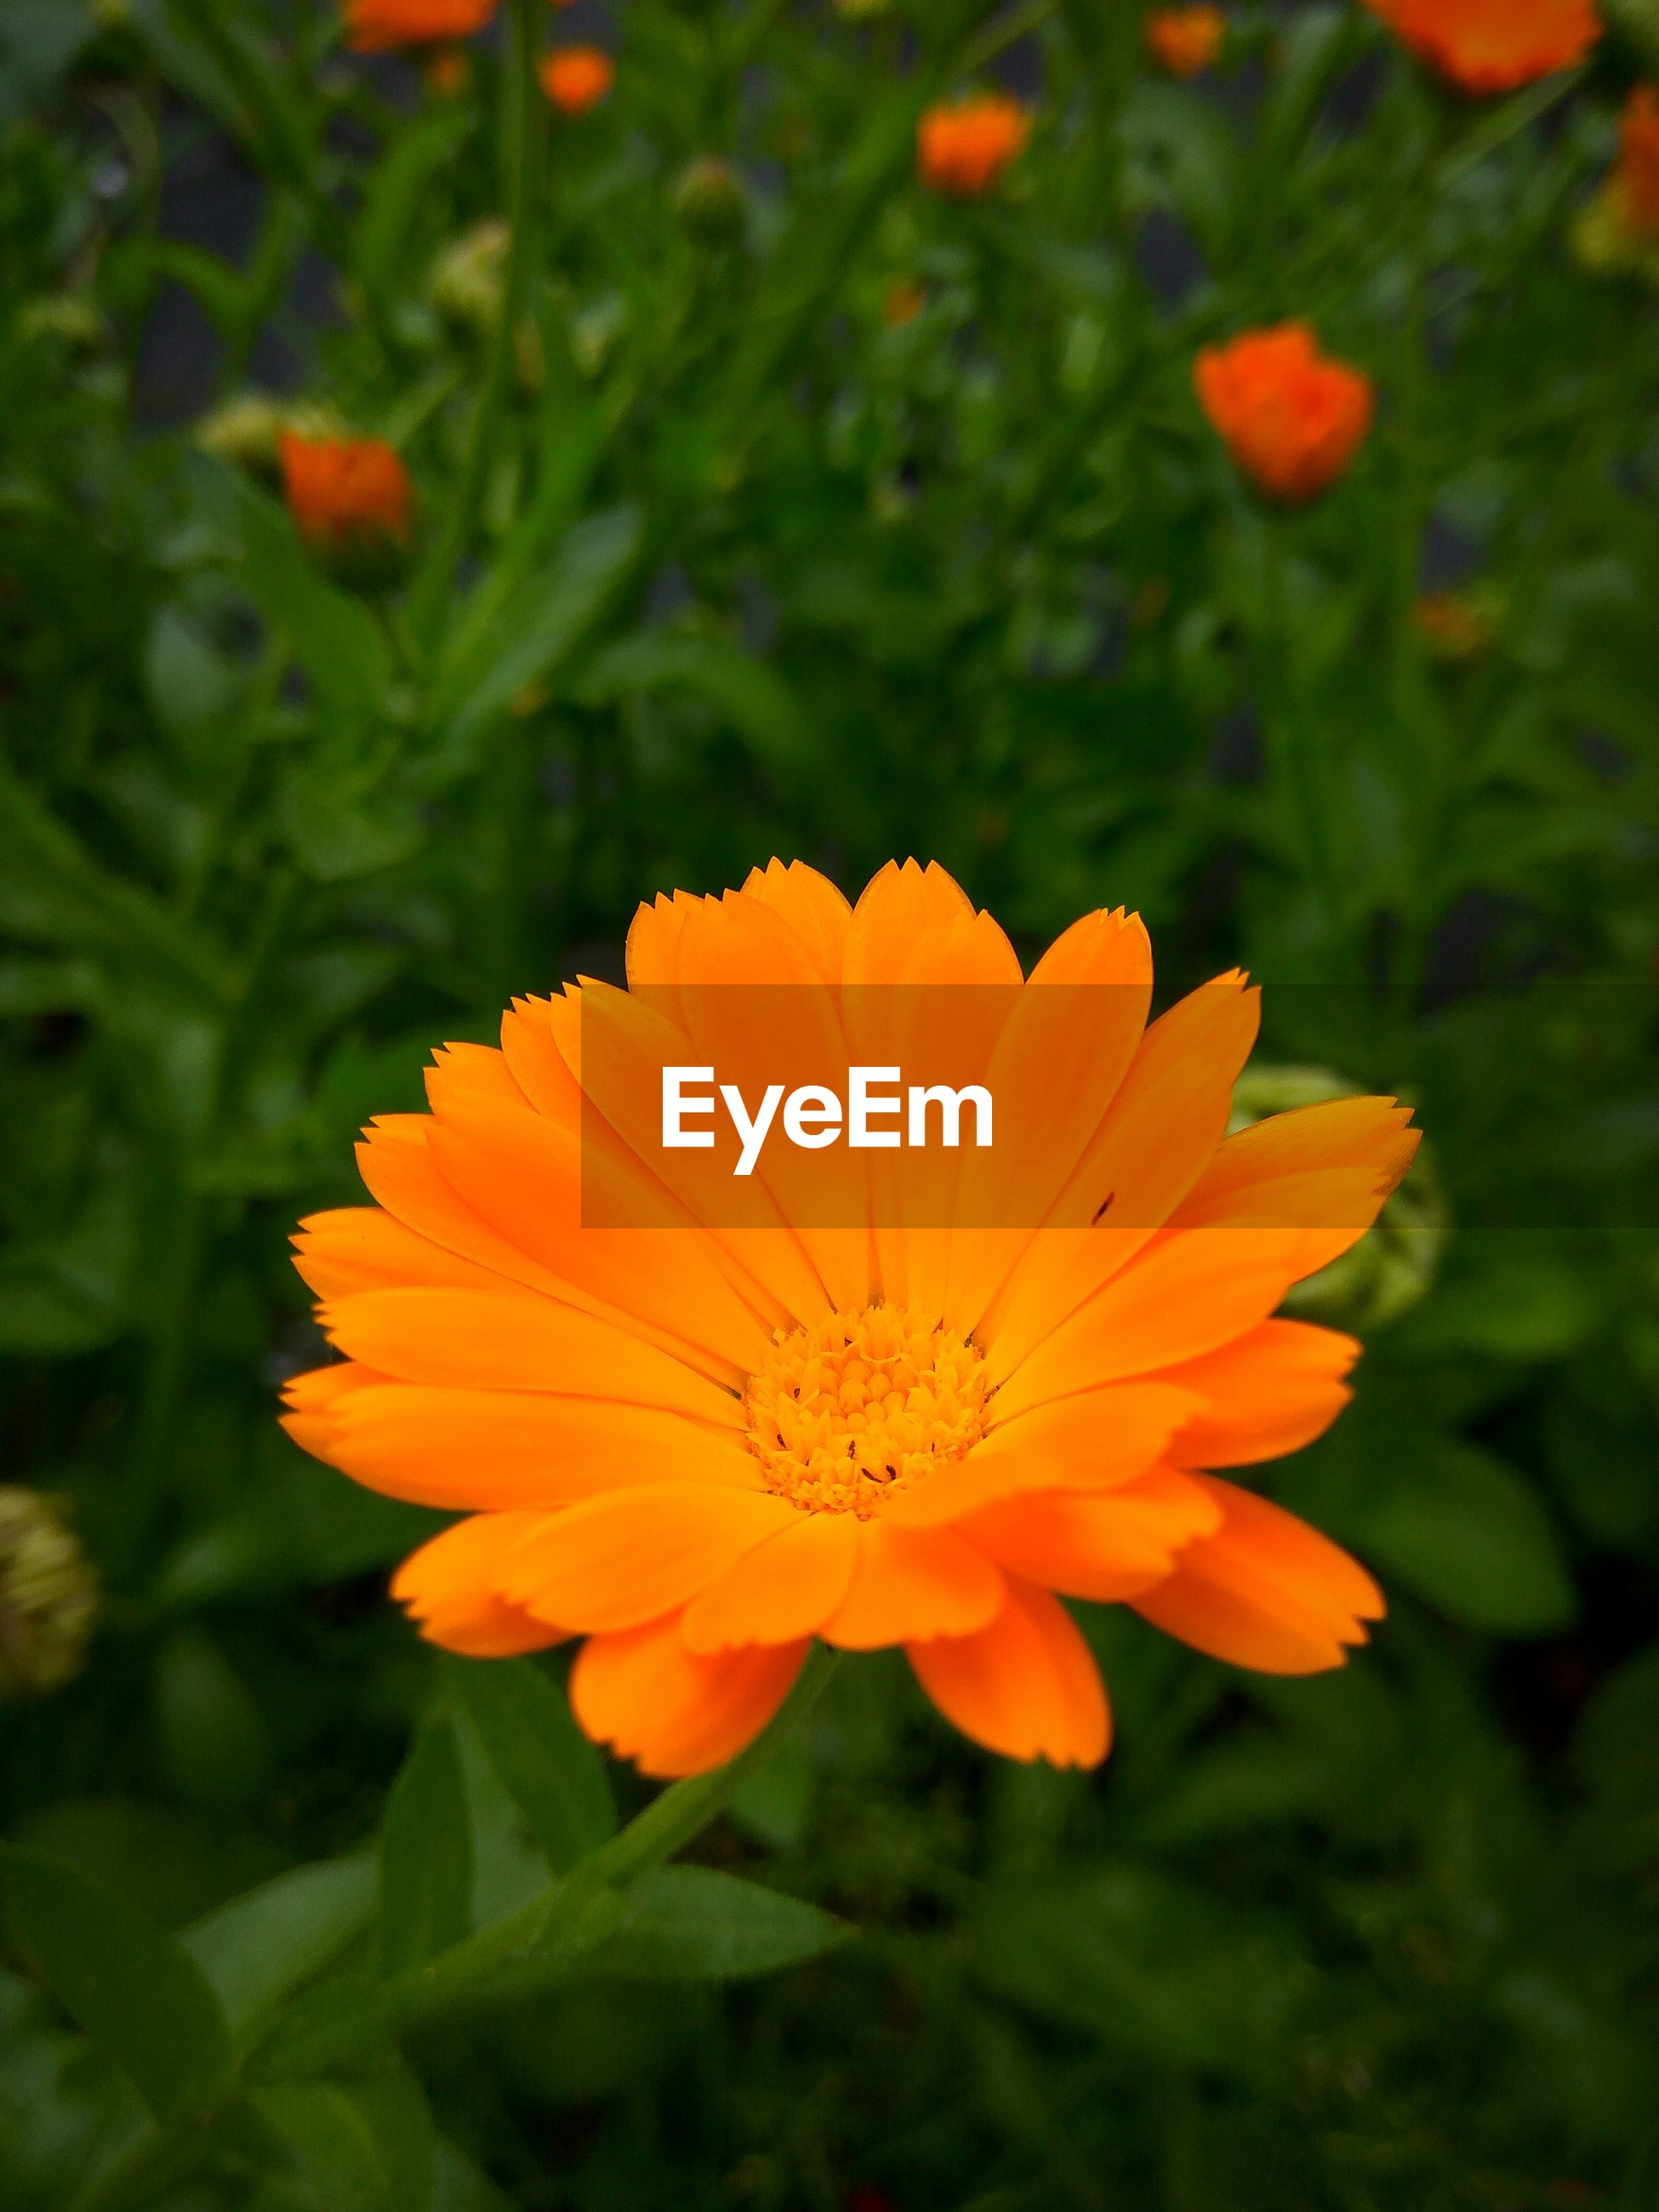 CLOSE-UP OF ORANGE FLOWER BLOOMING